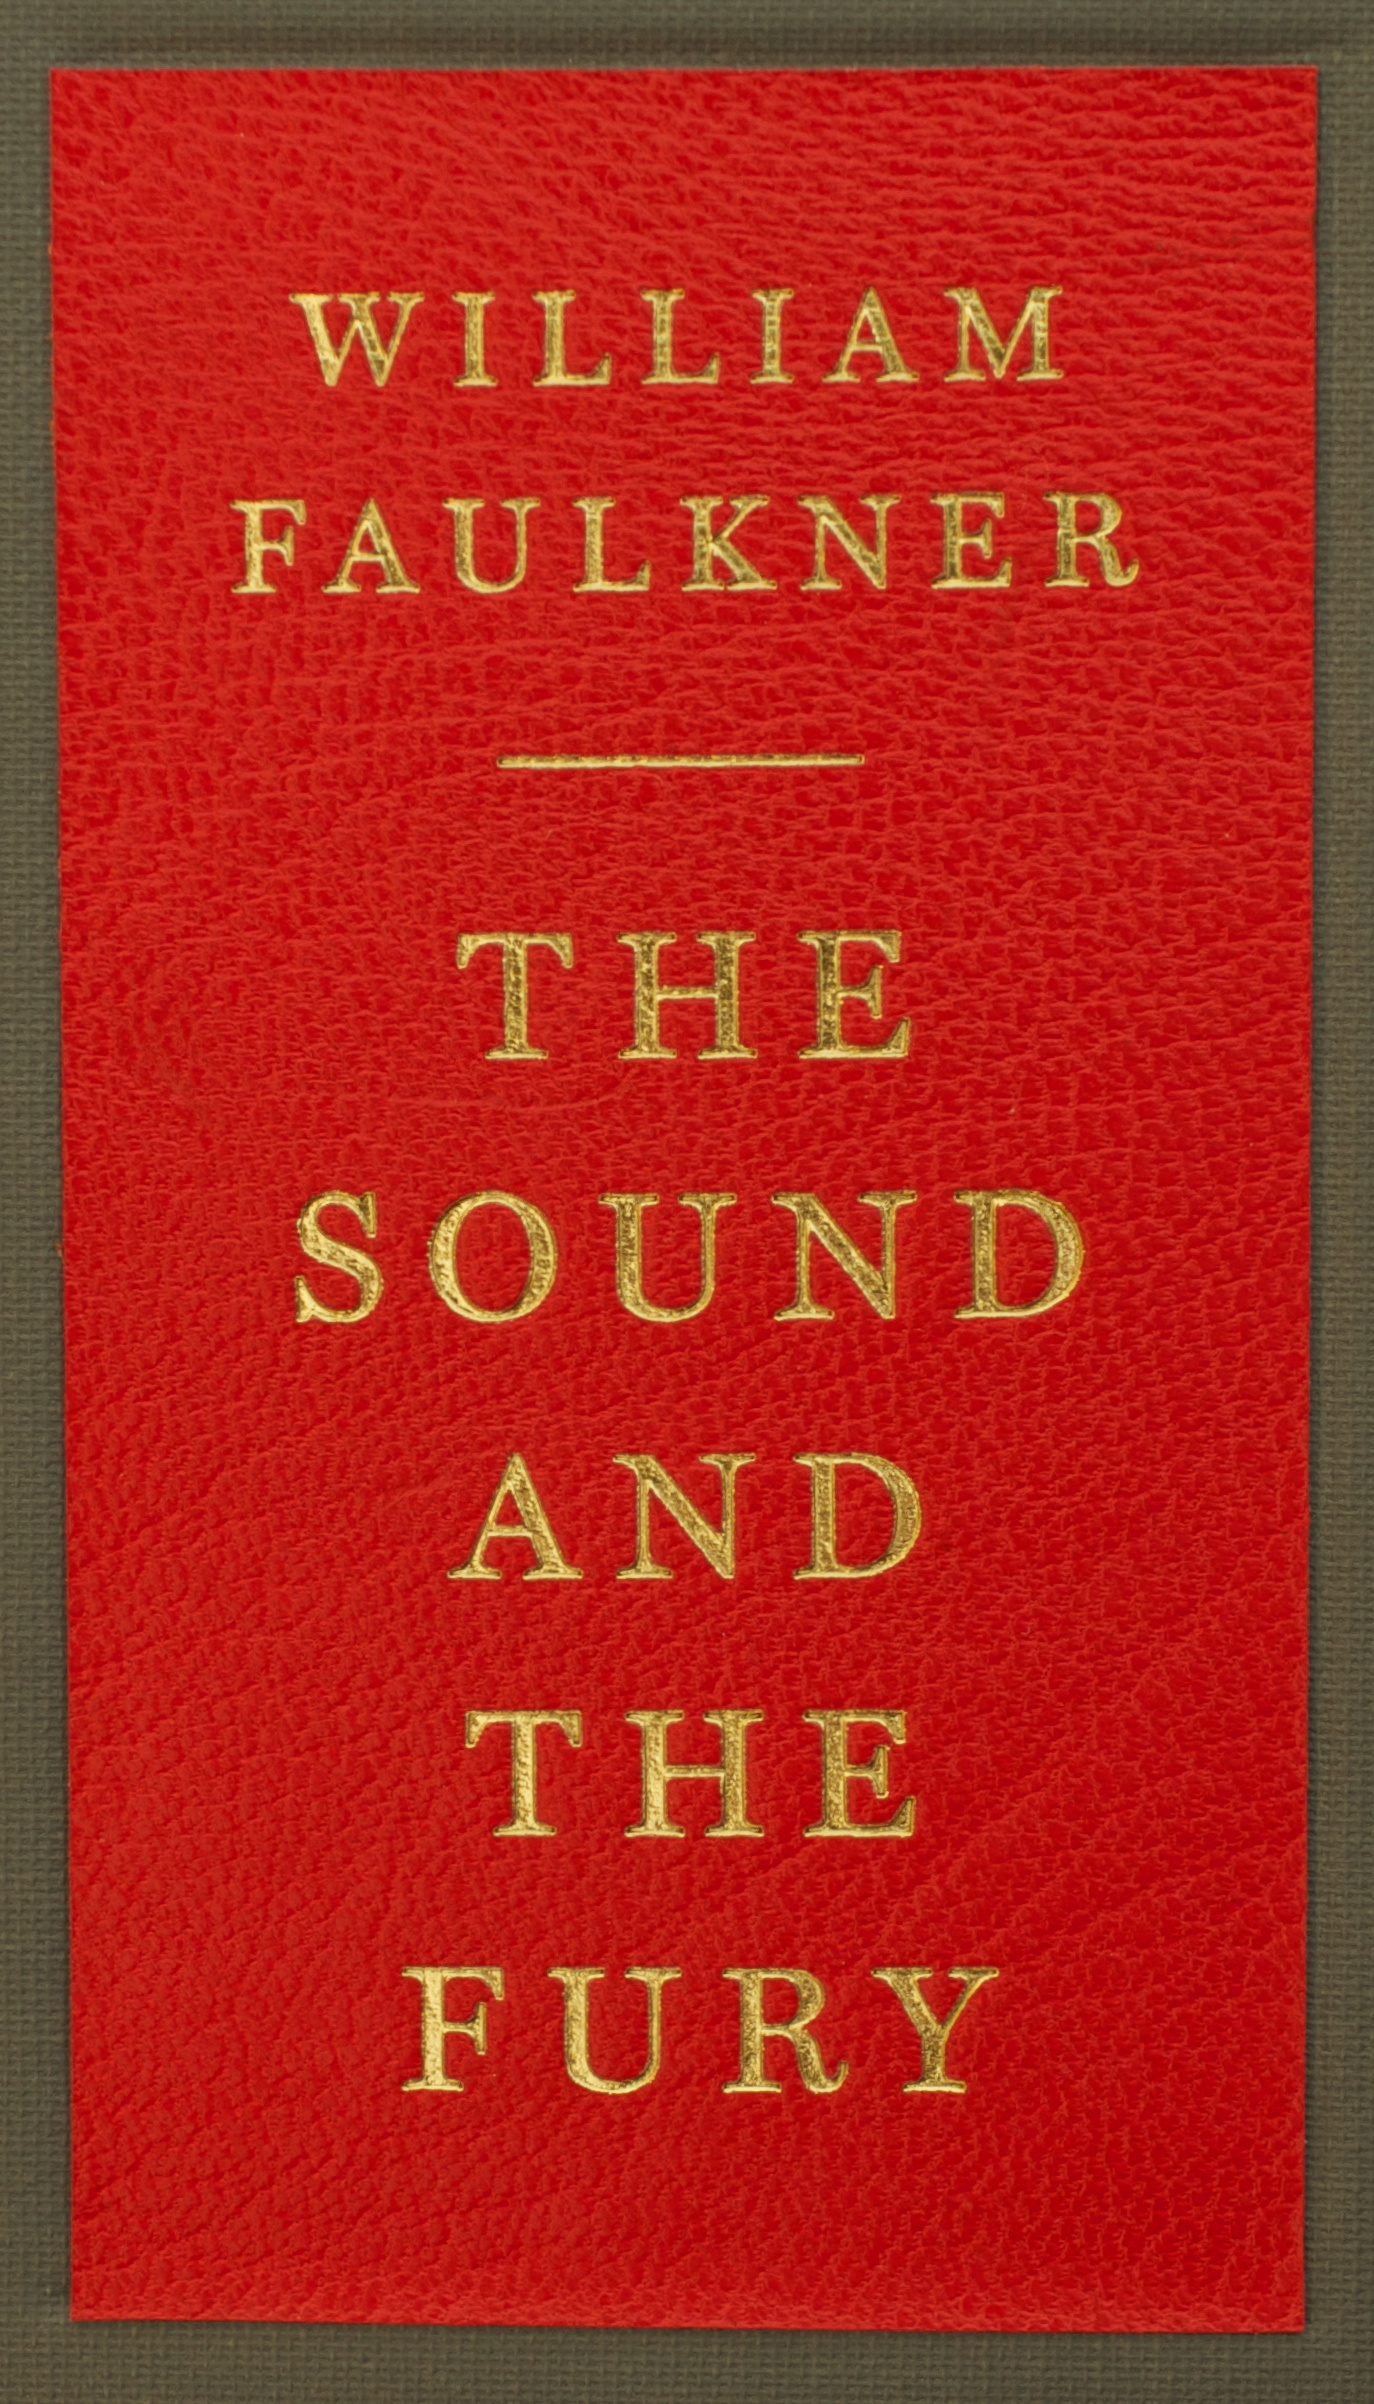 the sound and the fury The best study guide to the sound and the fury on the planet, from the creators of sparknotes get the summaries, analysis, and quotes you need.